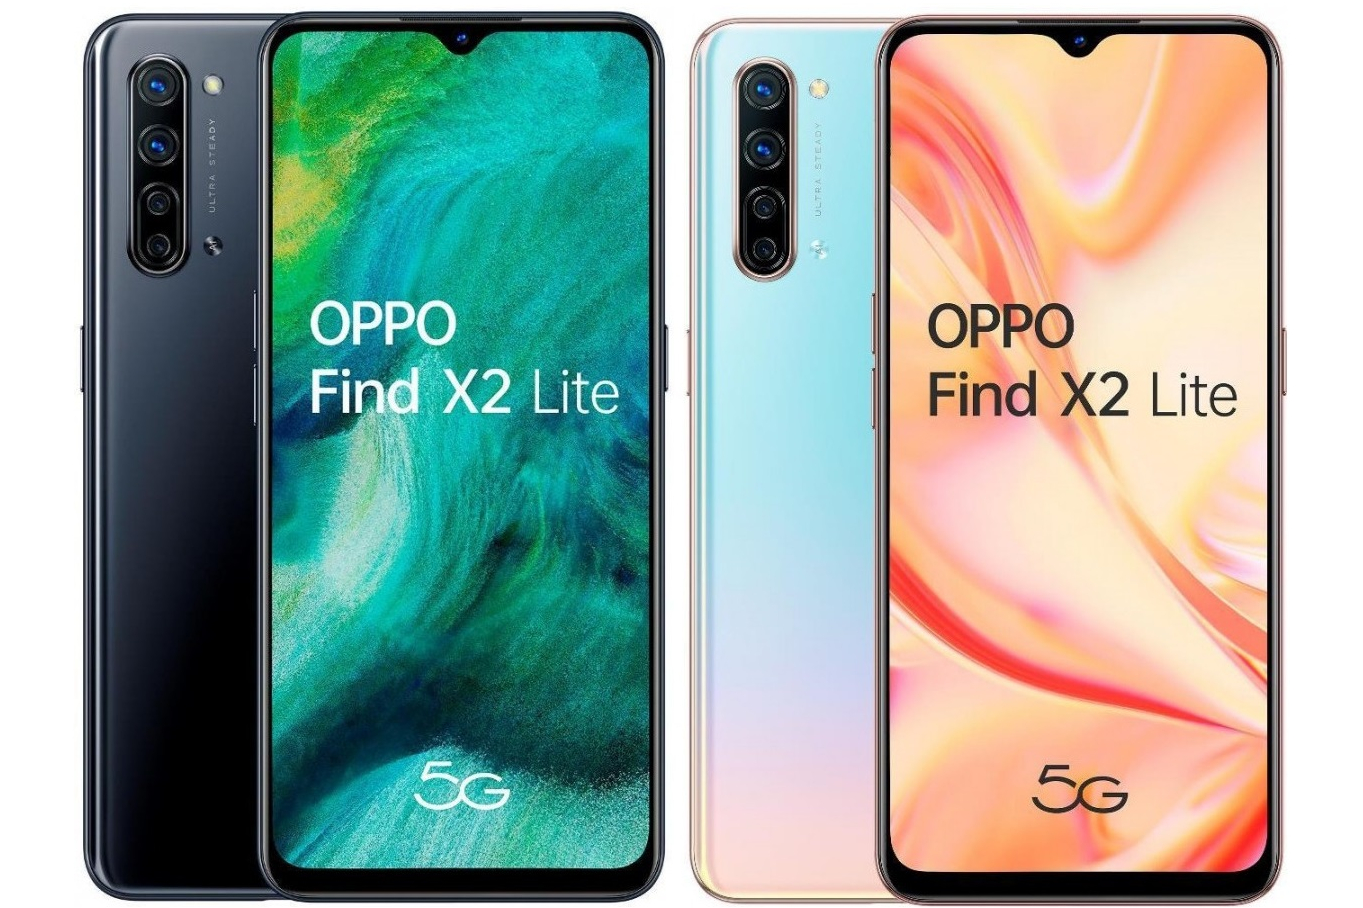 Oppo Find X2 Lite 5G Launched With Snapdragon 765G, 30W Fast Charging